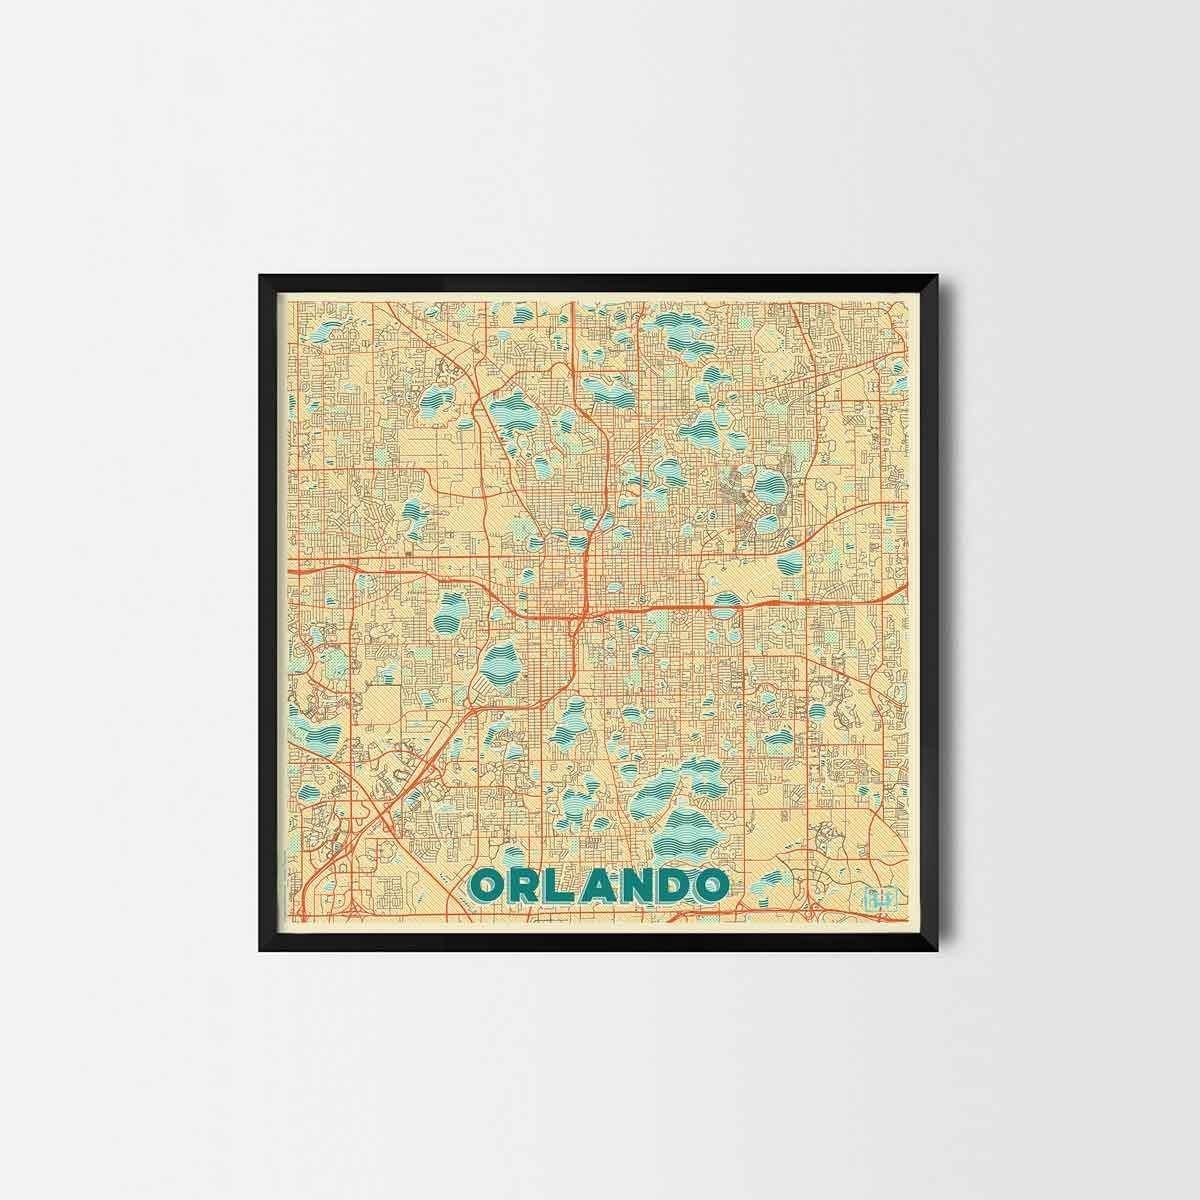 Orlando City Prints - City Art Posters and Map Prints | Art posters ...